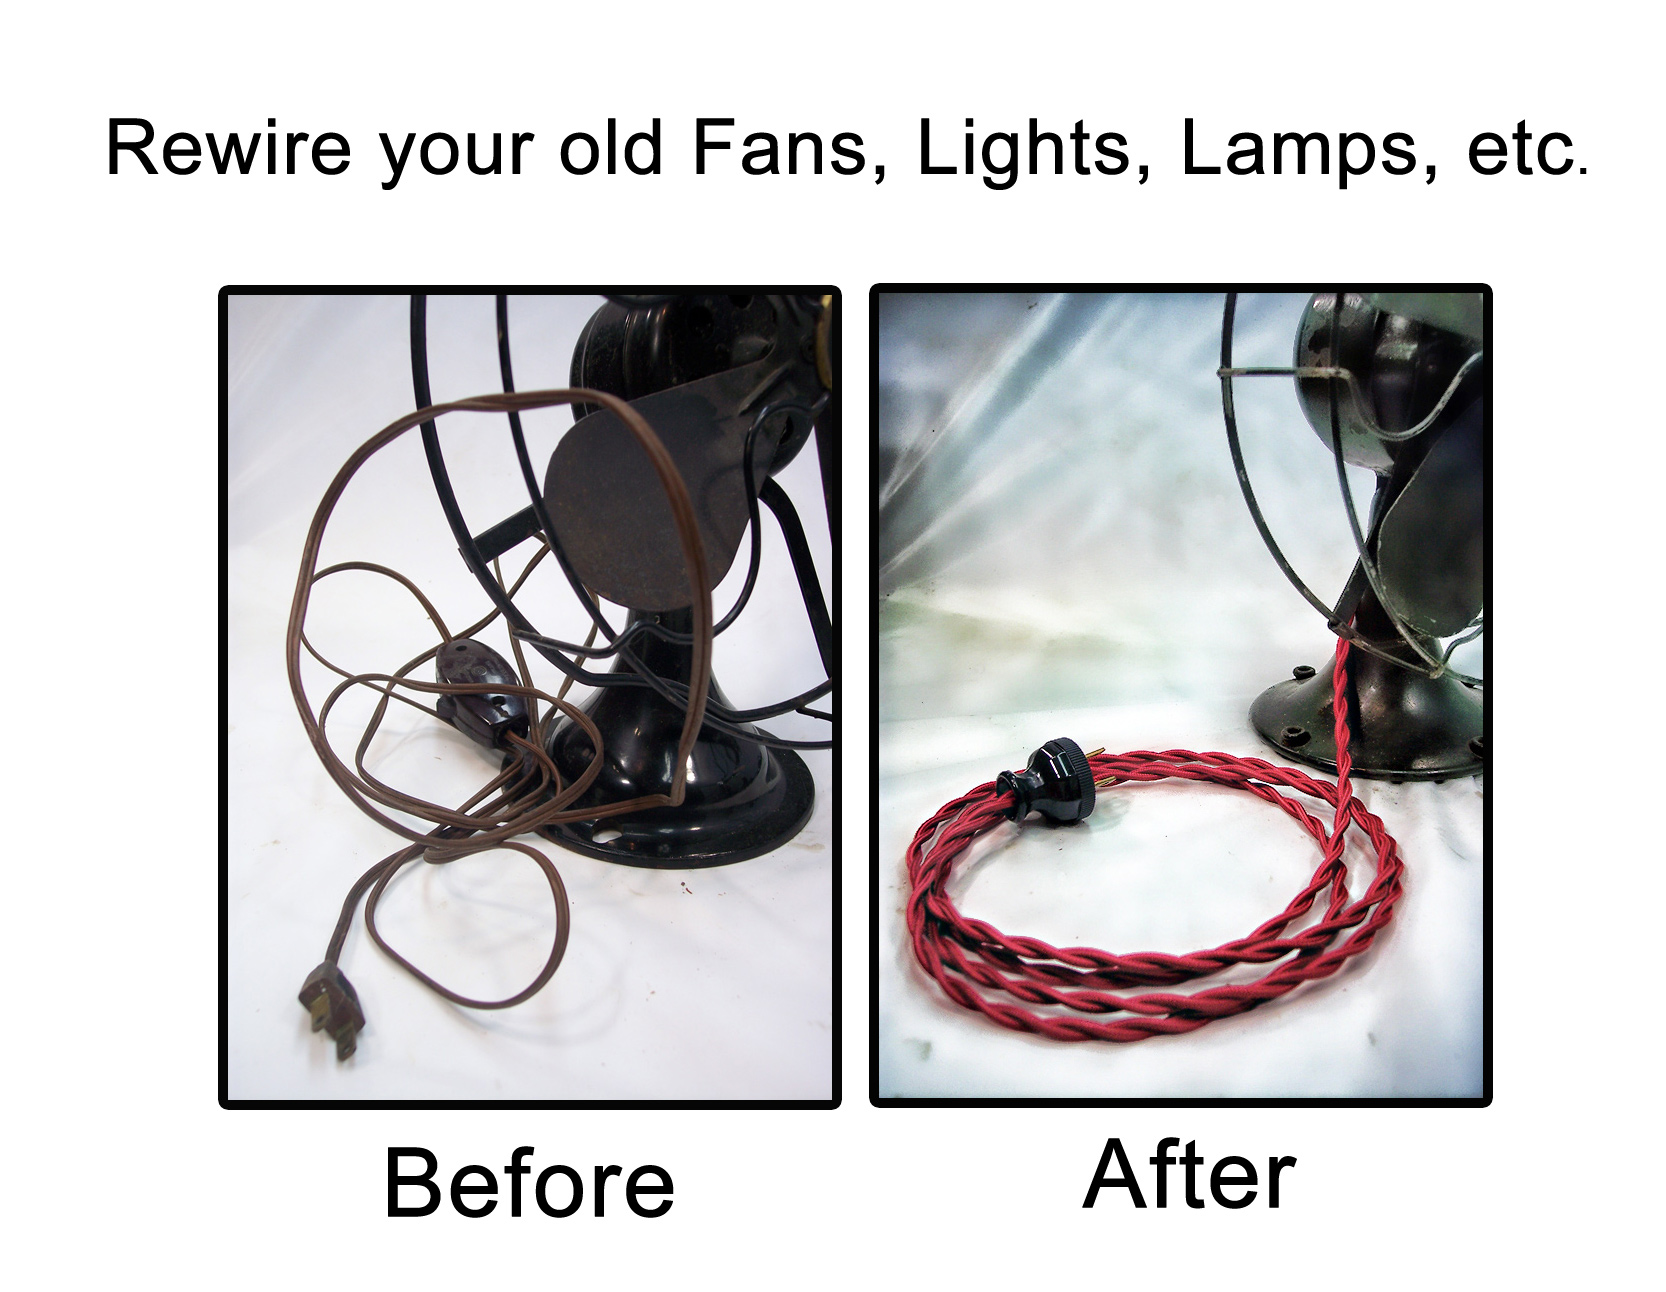 Phenomenal Cloth Covered Rewire Kits For Lamp Fan Restorations Wiring Cloud Cosmuggs Outletorg